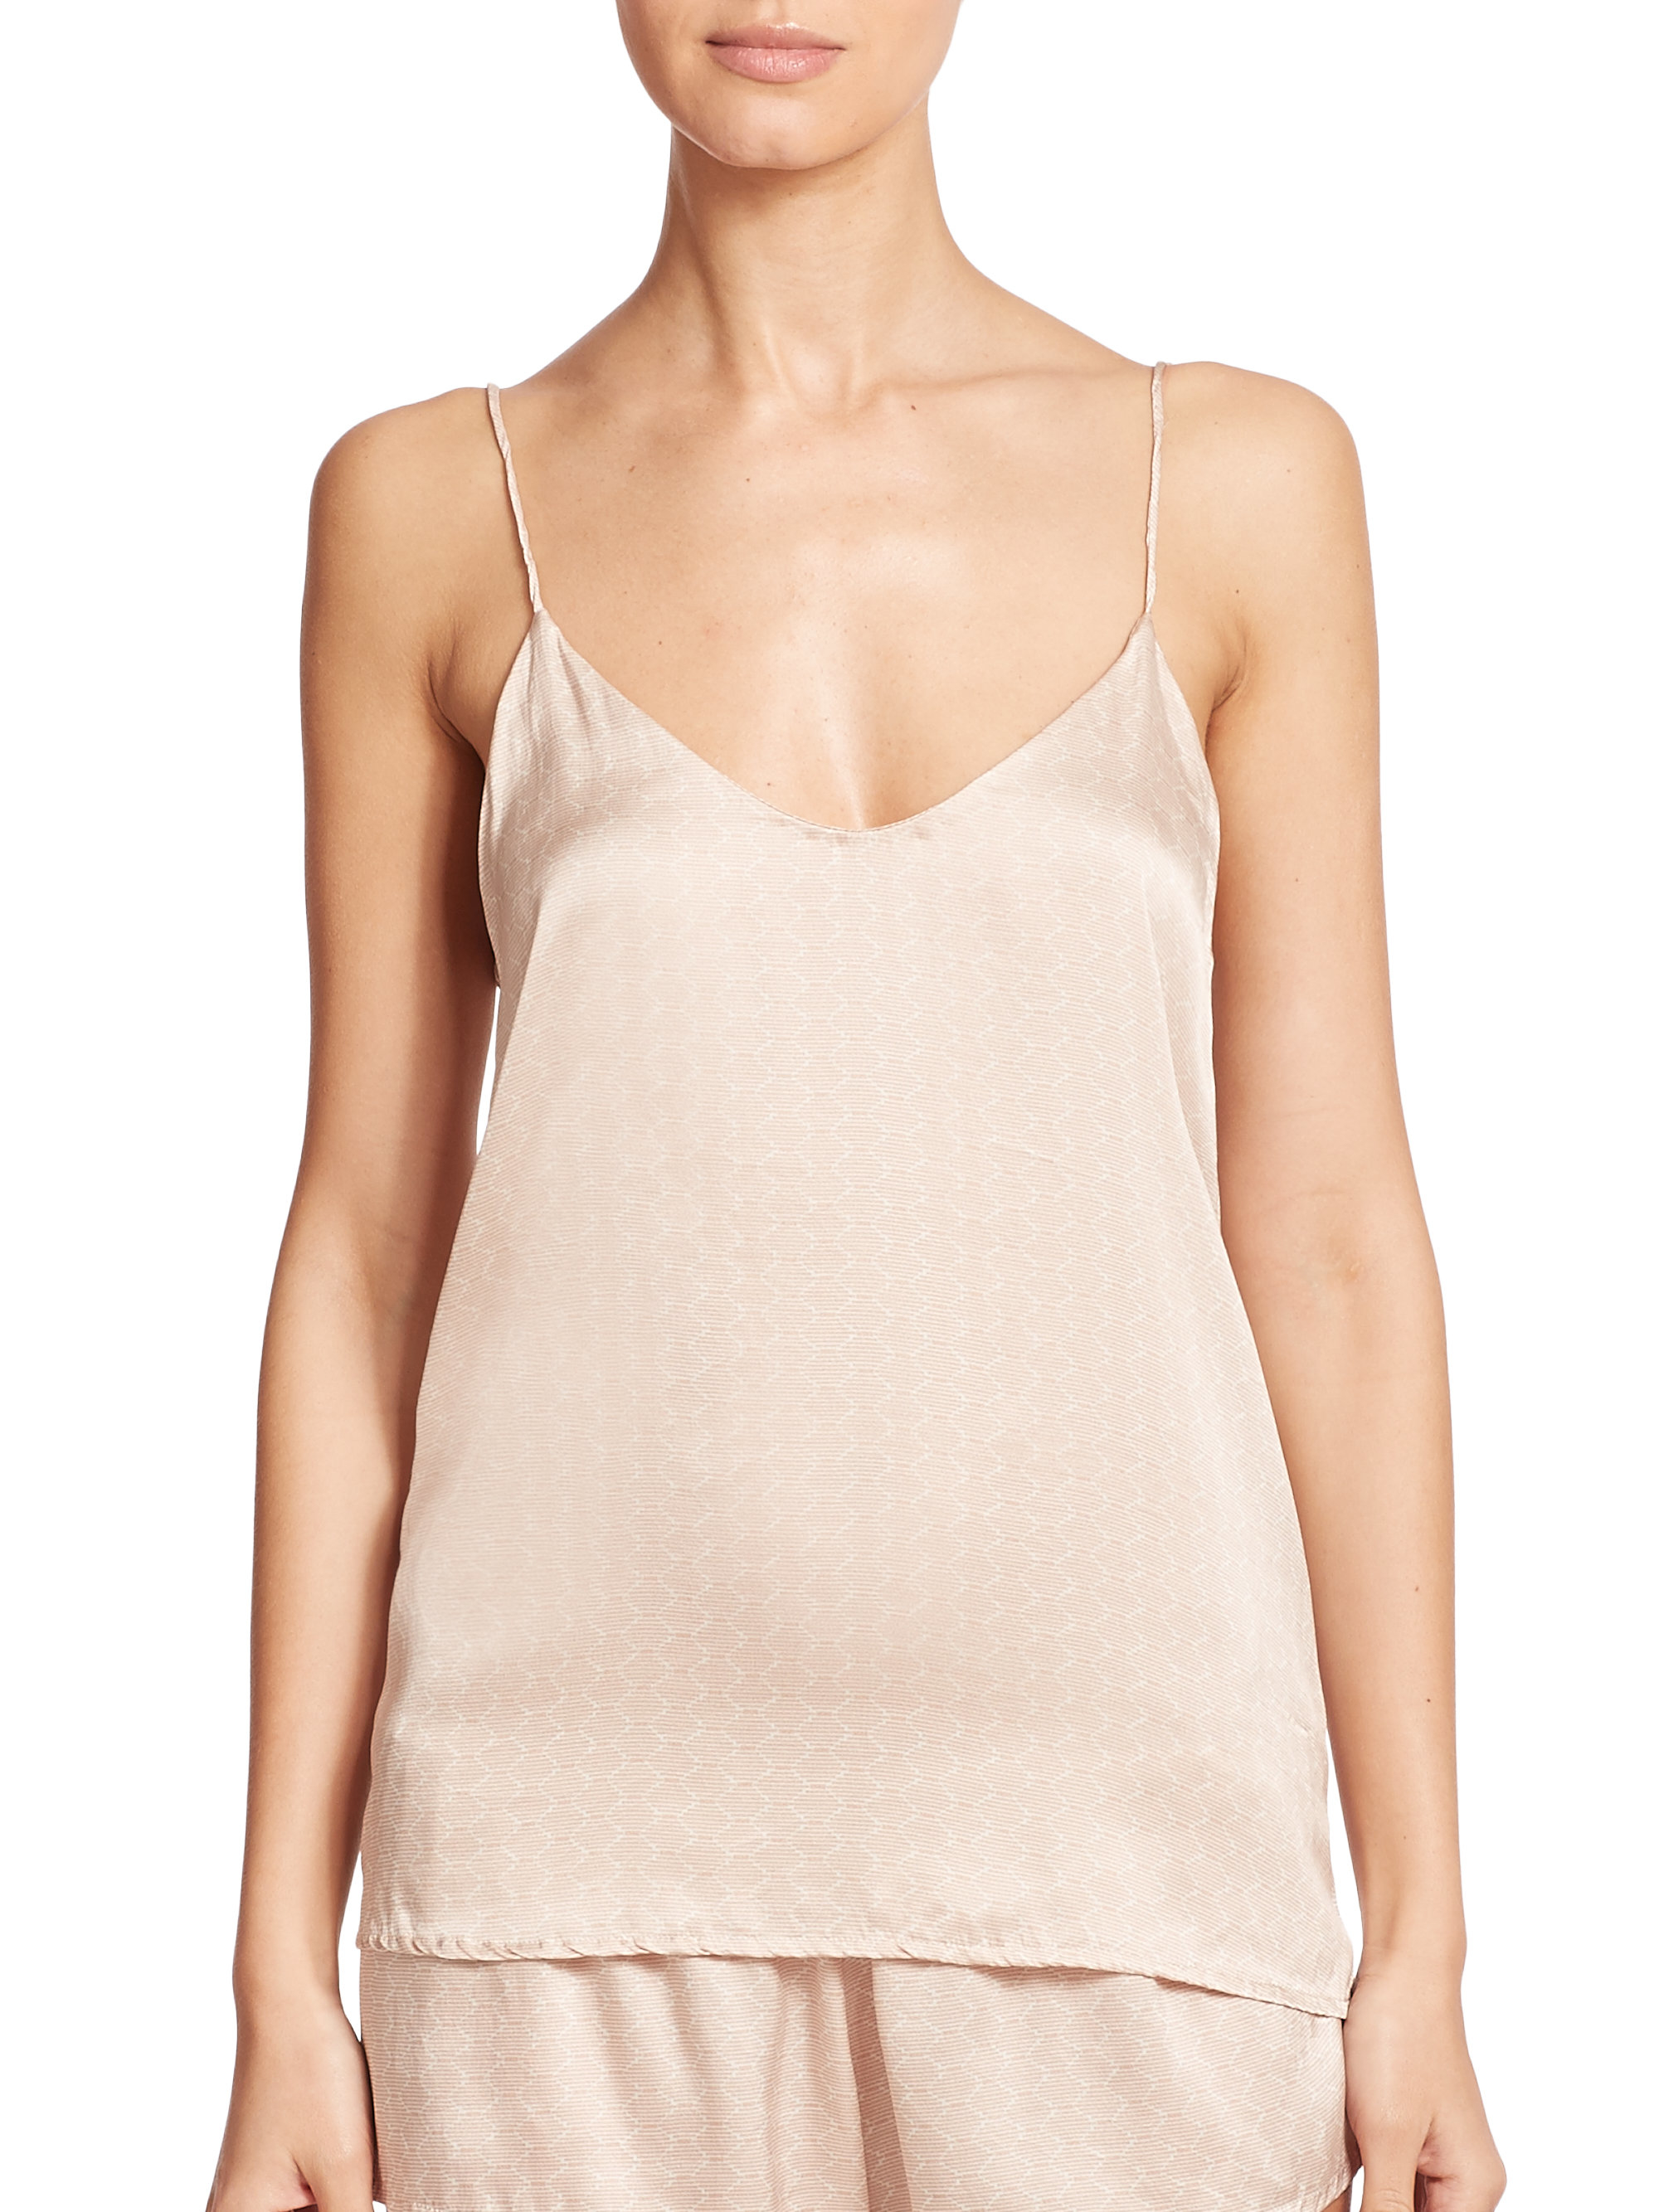 Lyst - Beautiful Bottoms Simple Silk Camisole In Natural-1581